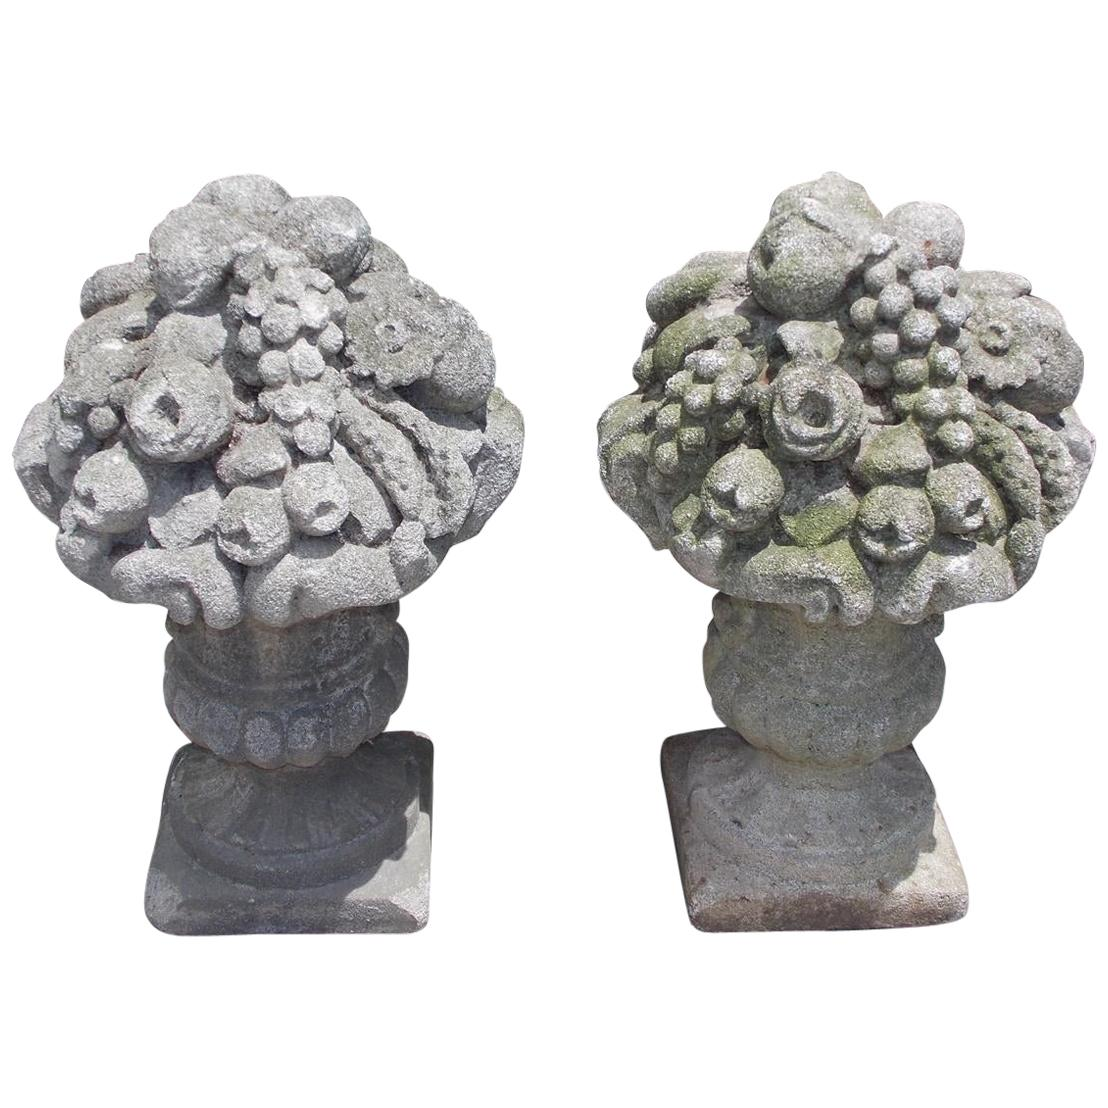 Pair of English Cast Stone Floral and Fruit Basket Garden Ornaments, Circa 1830